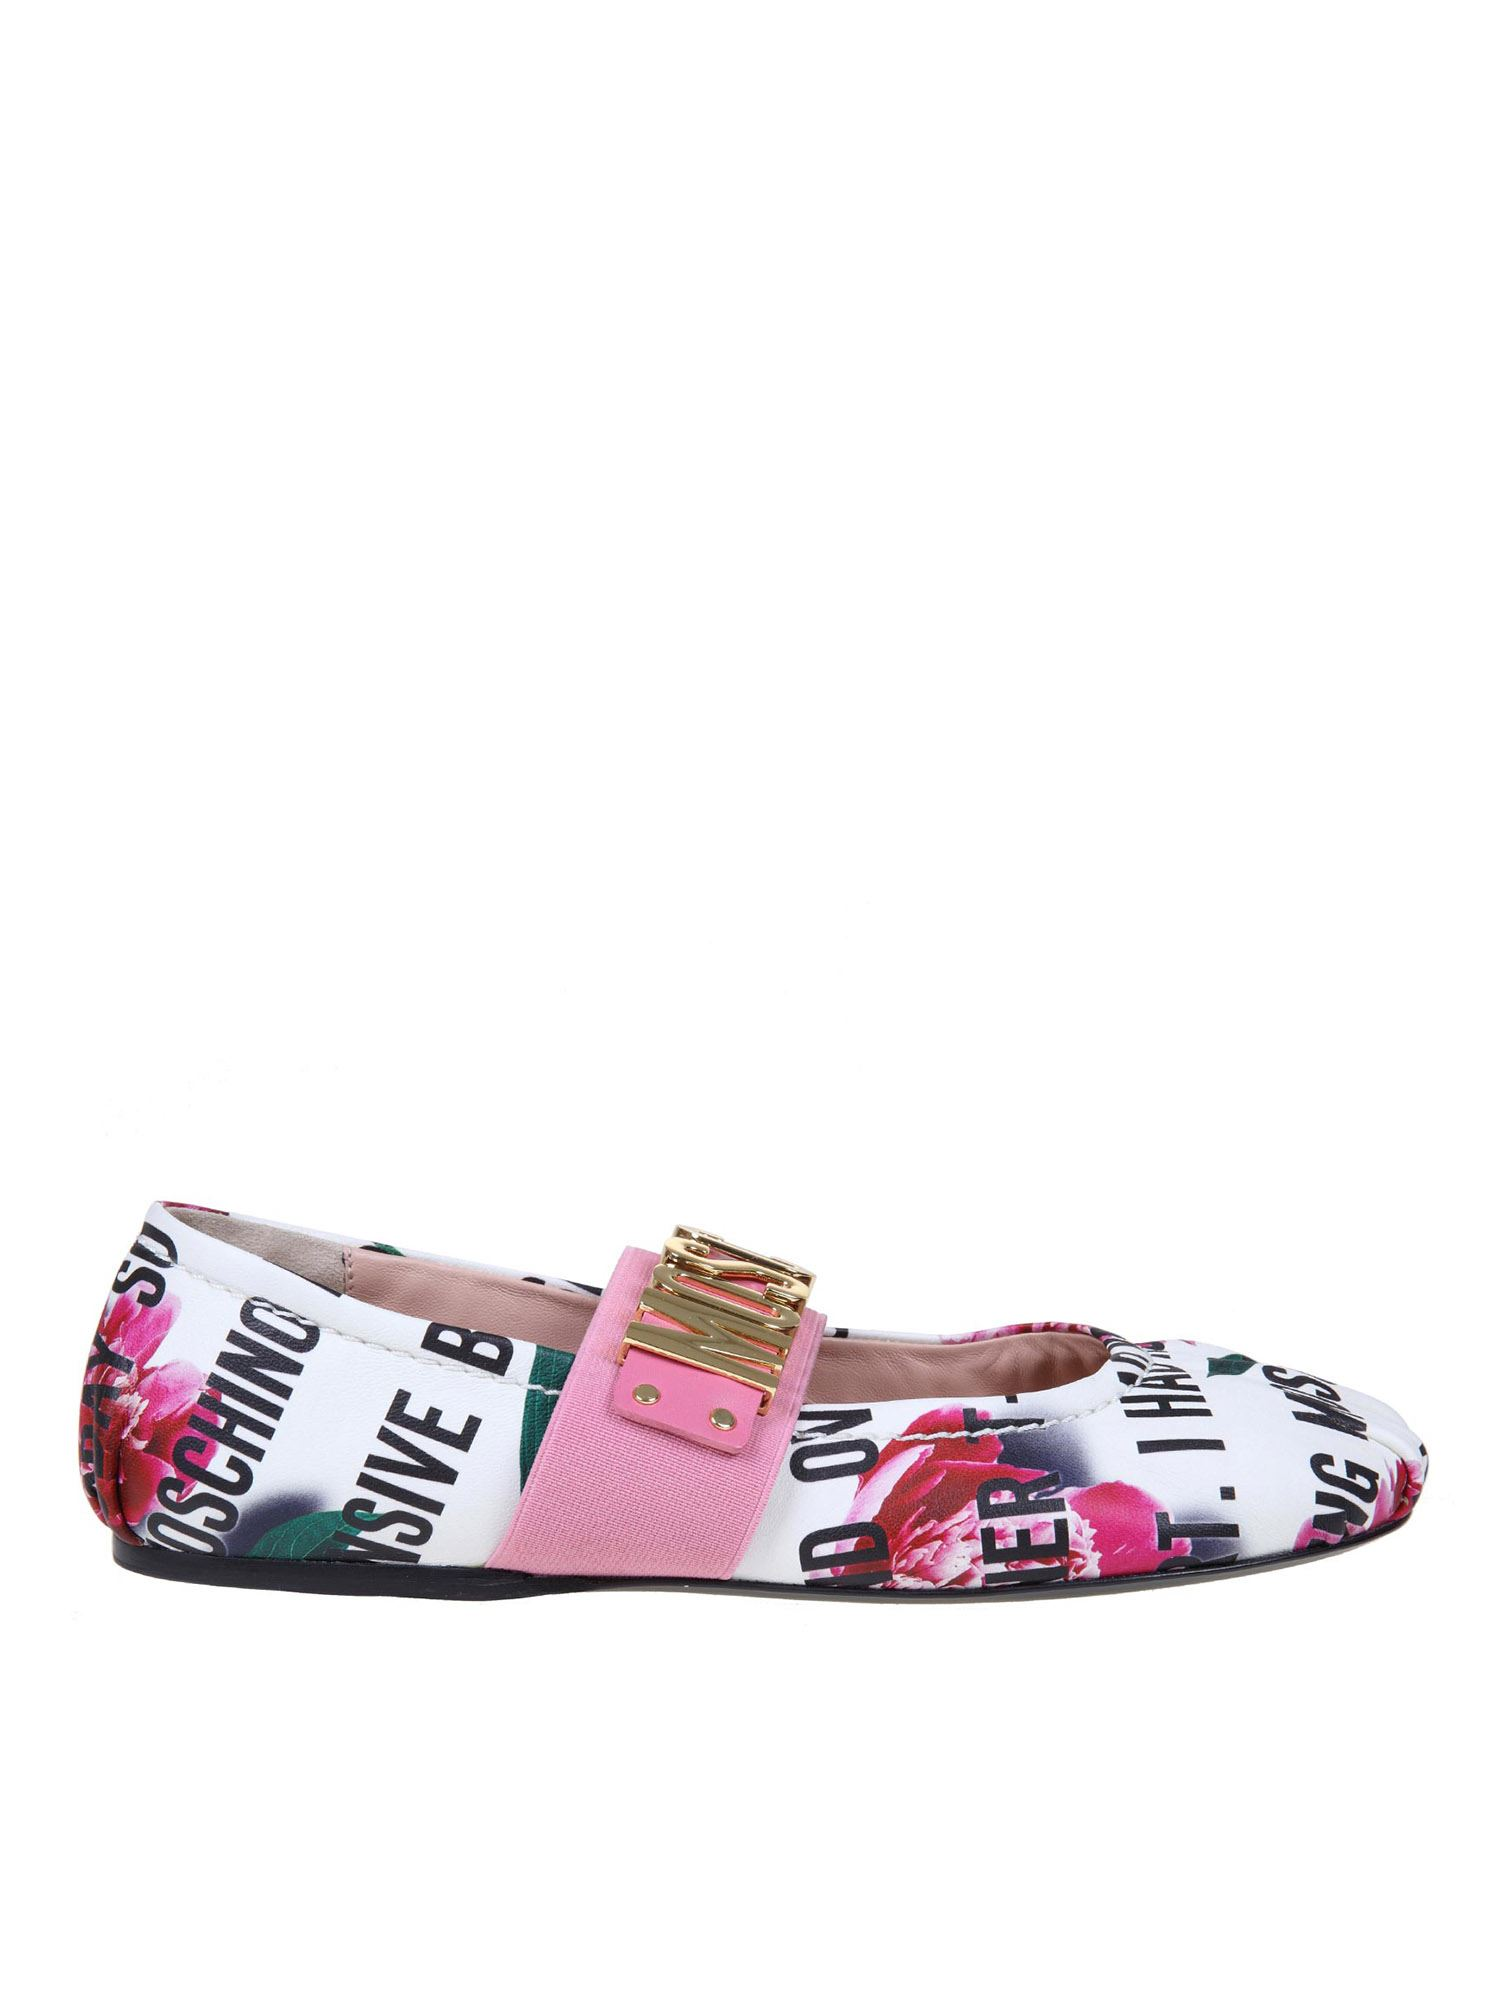 Moschino Leathers LOGO PRINTED BALLET FLATS IN MULTICOLOR